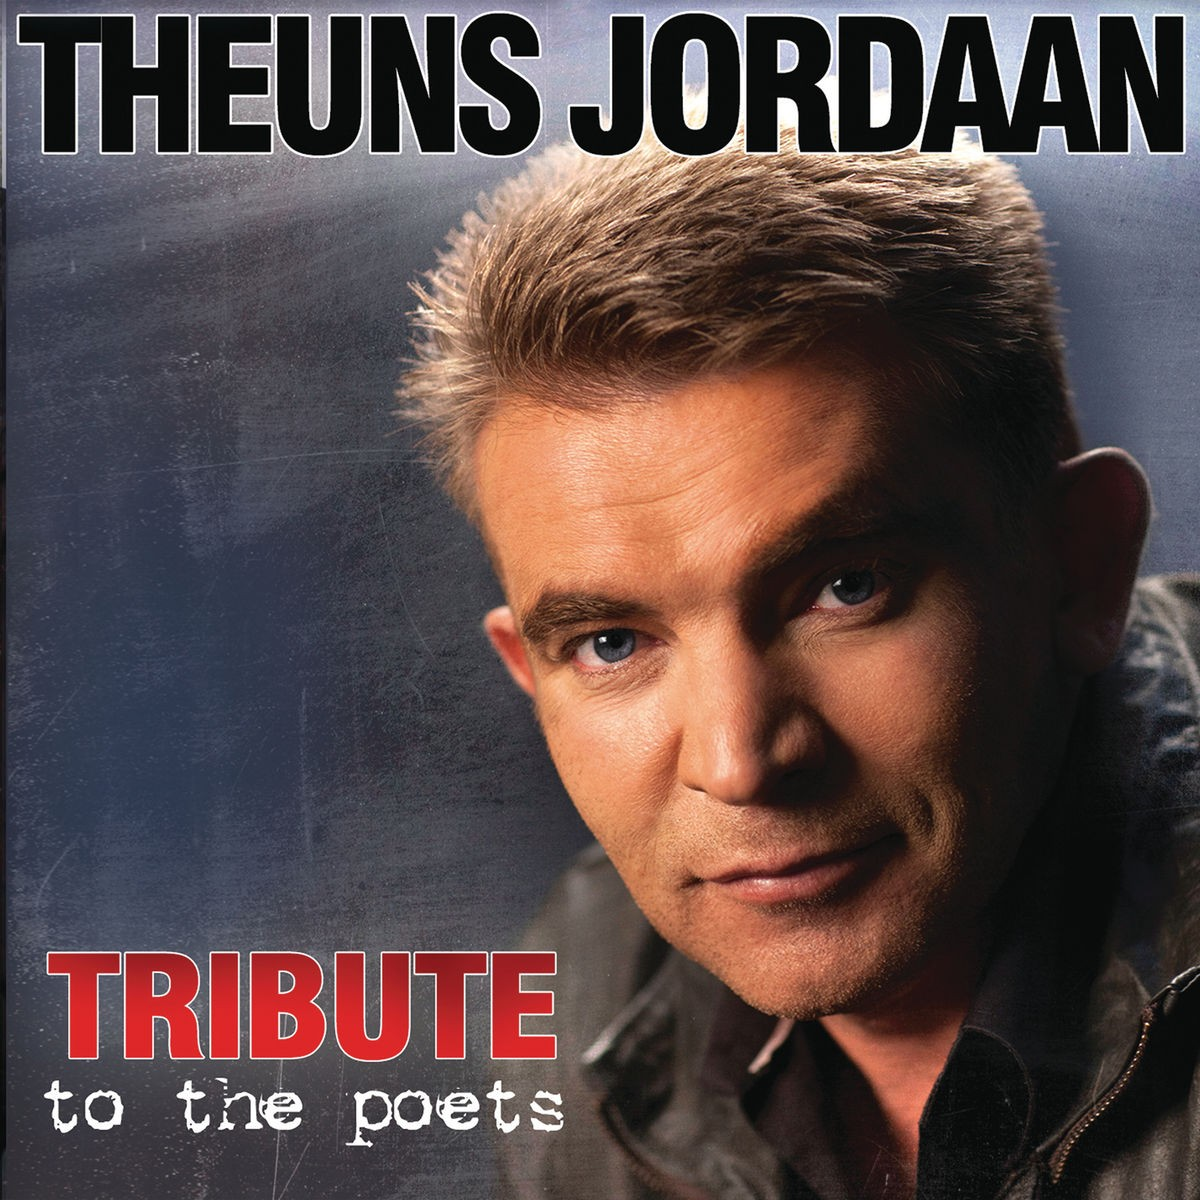 Theuns Jordaan Tribute To The Poets Cd Echo S Record